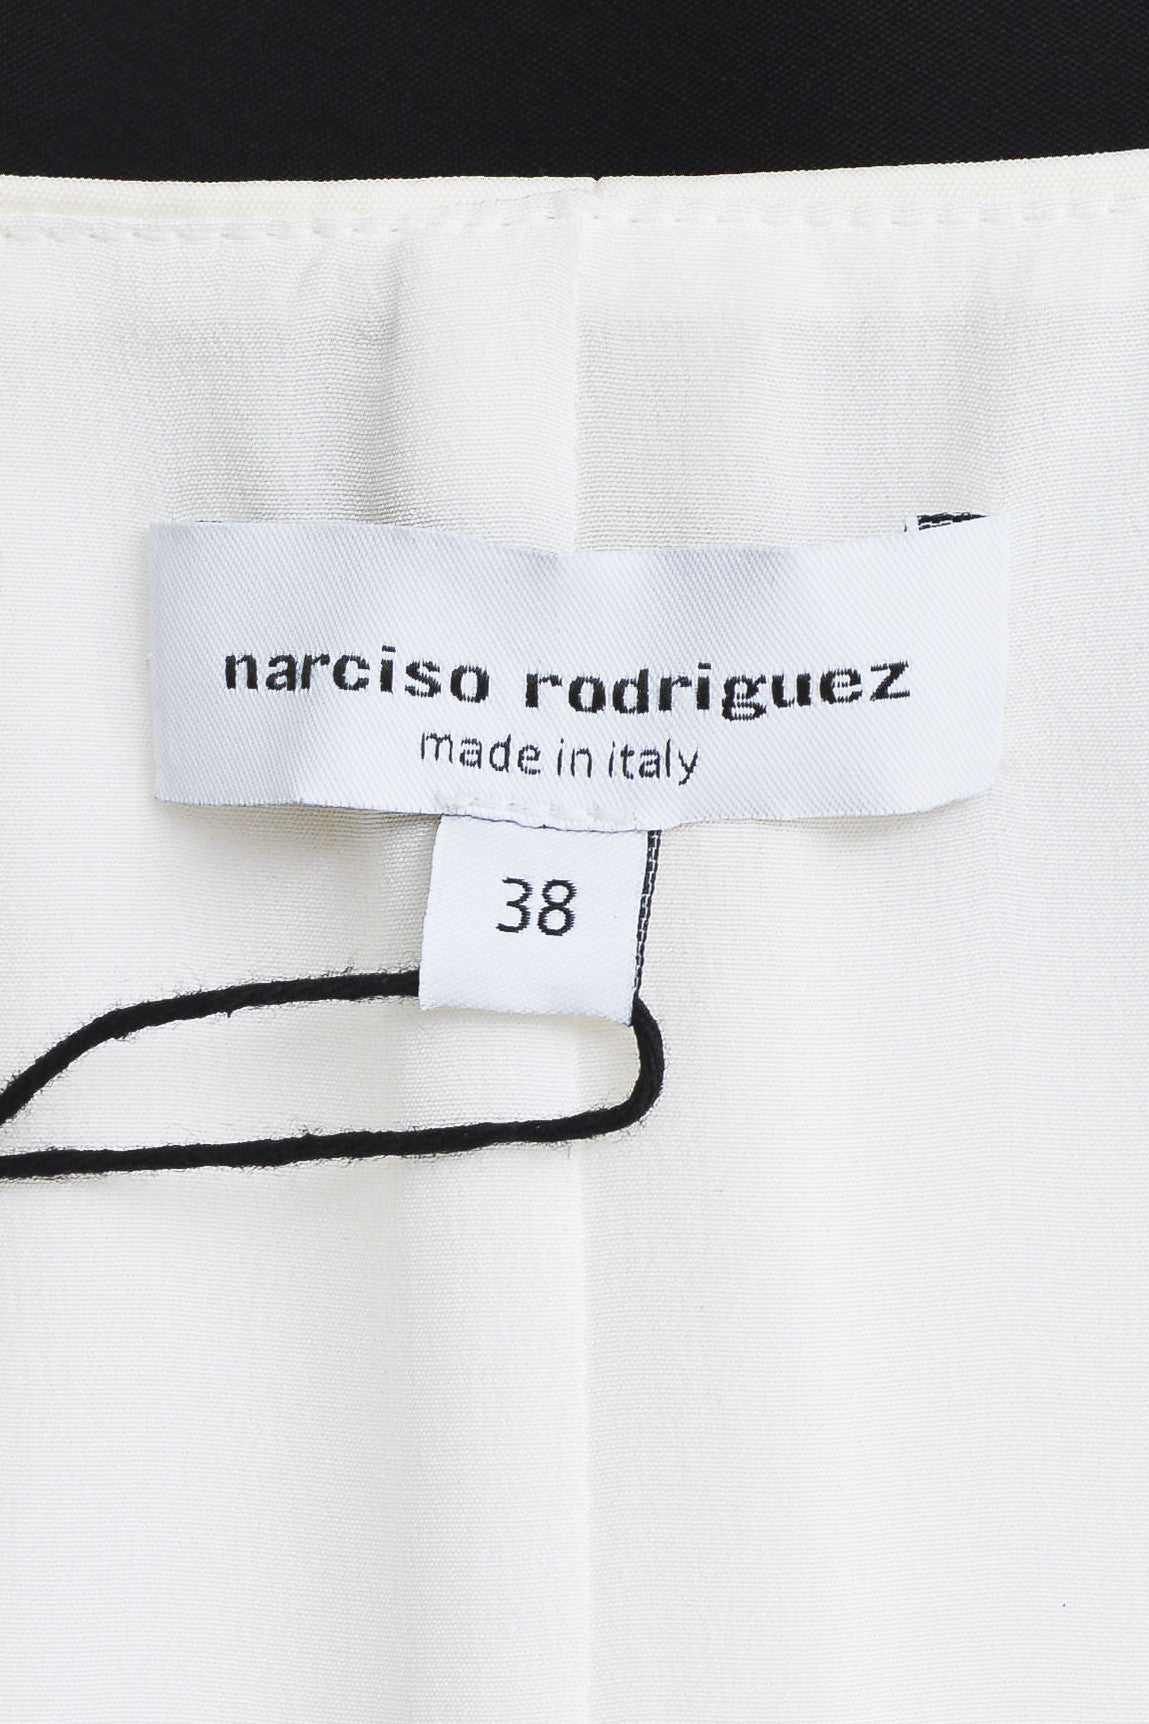 Narciso Rodriquez Black and White Wool and Silk Color Block Layered Dress Brand